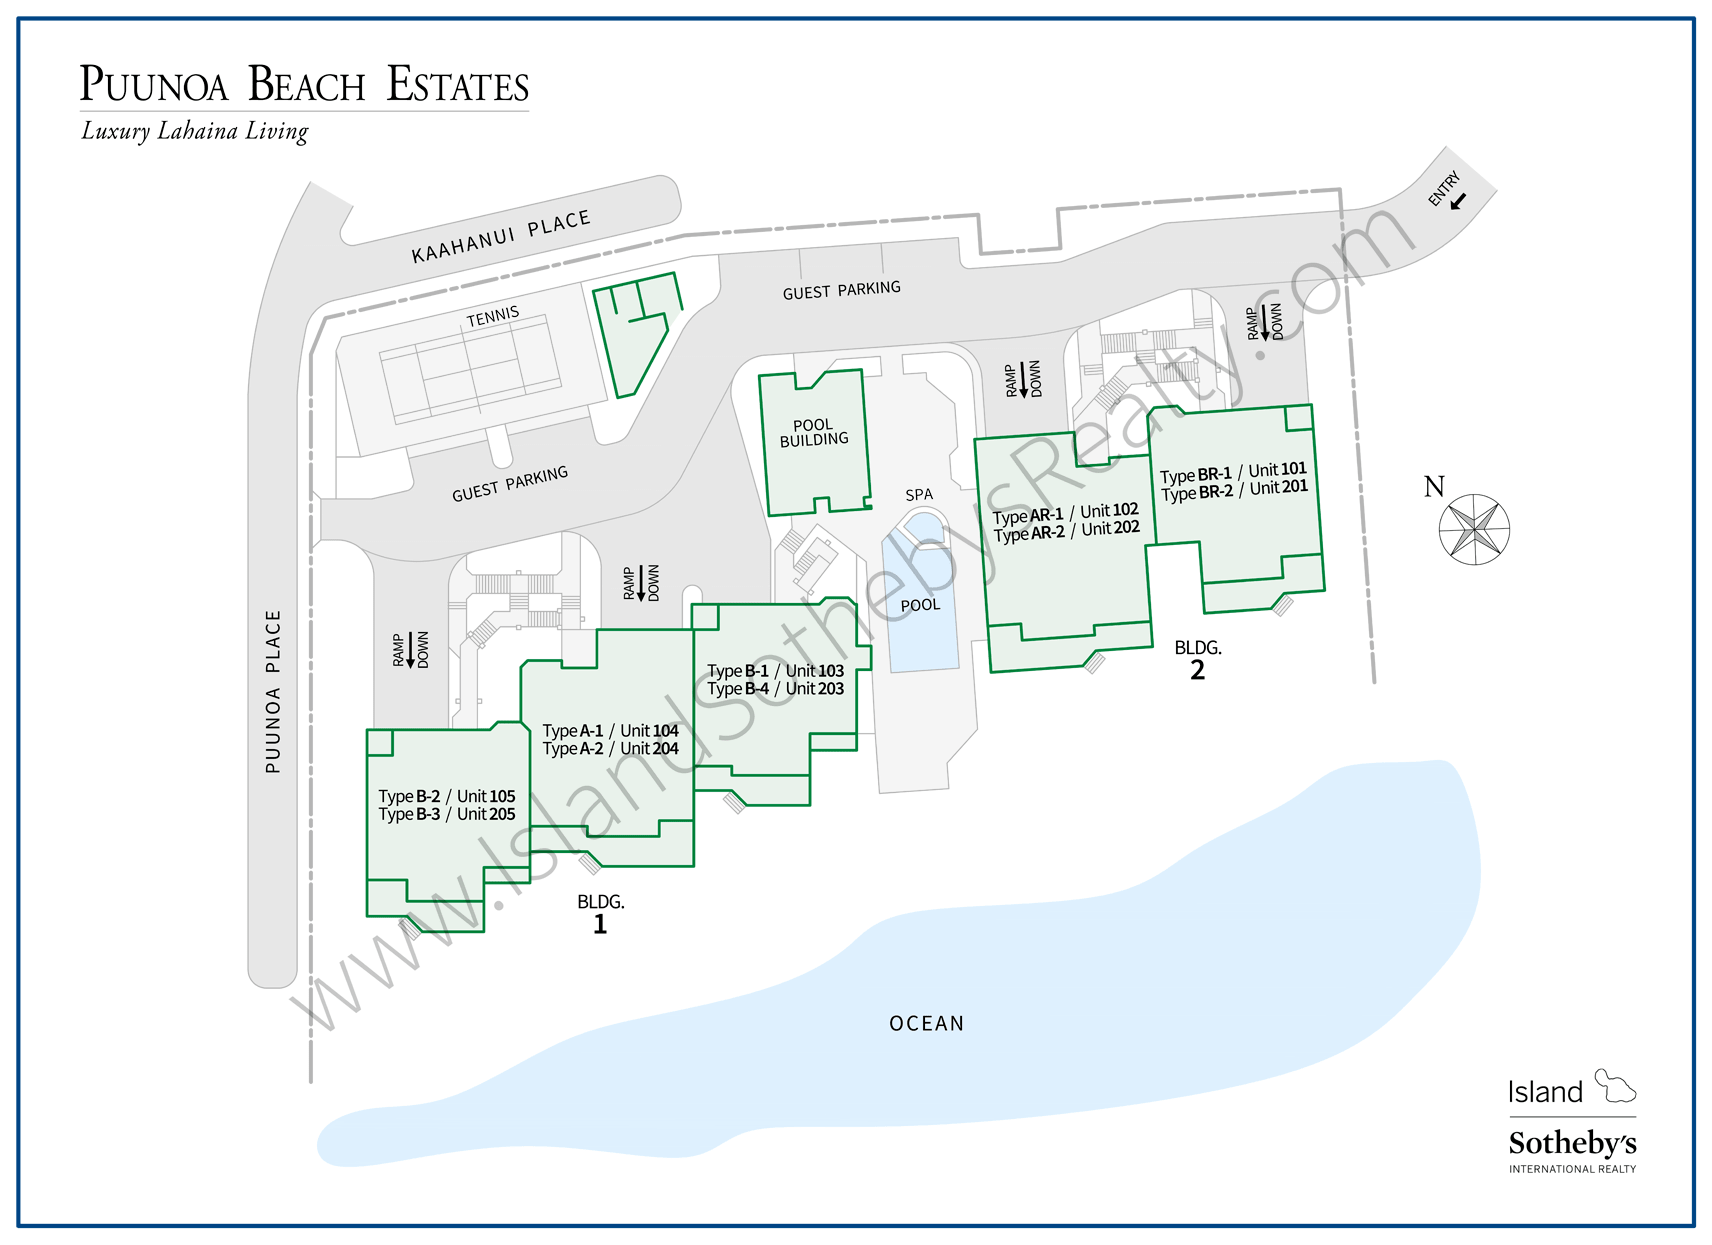 Map of Puunoa Beach Estates